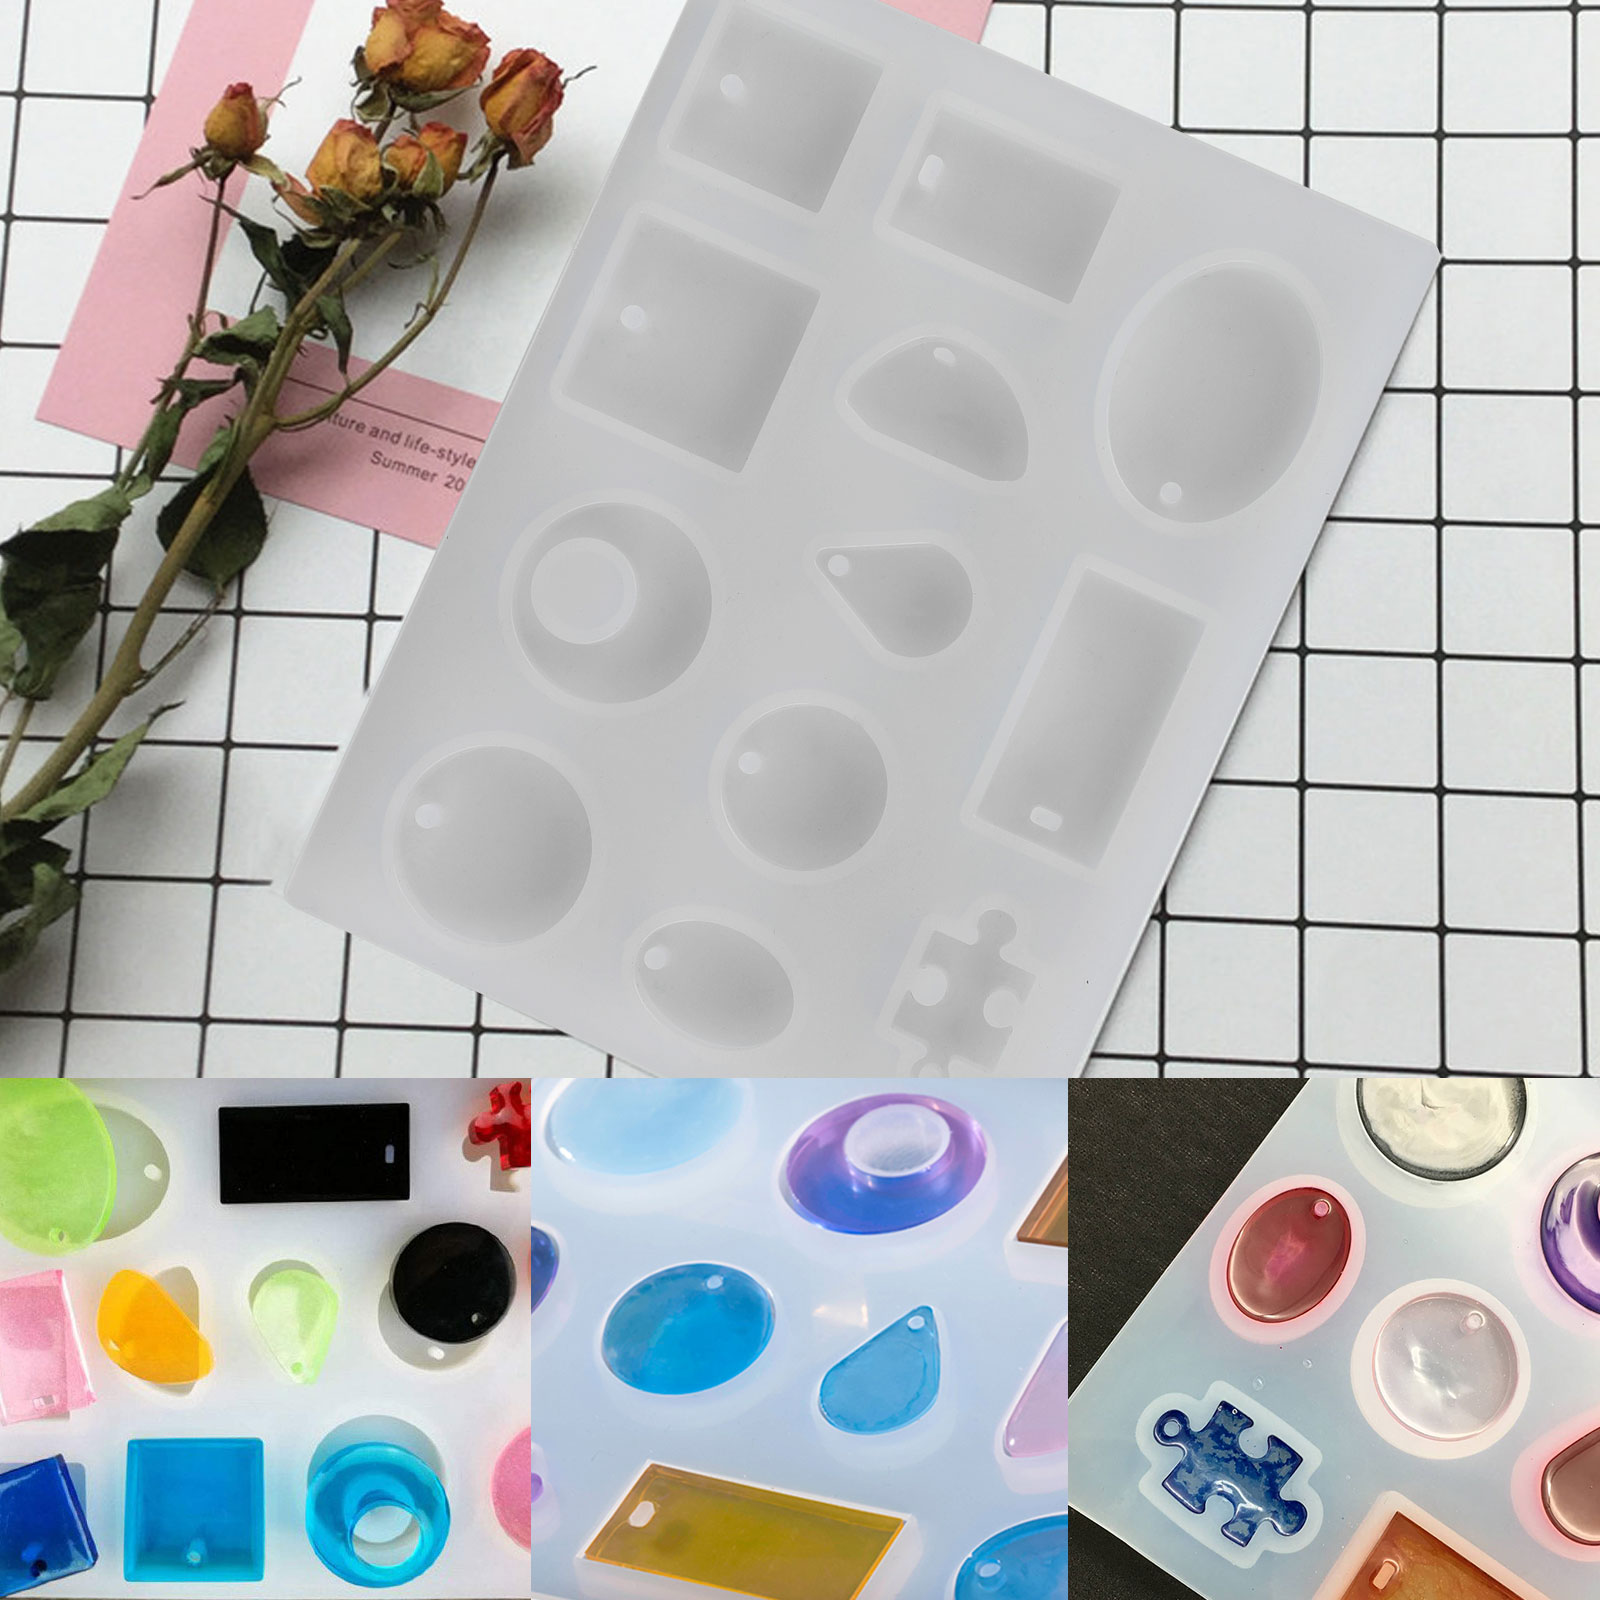 Lot-Resin-Casting-Silicone-Molds-Epoxy-Spoon-Jewelry-Making-Pendant-Craft-DIY-US thumbnail 12